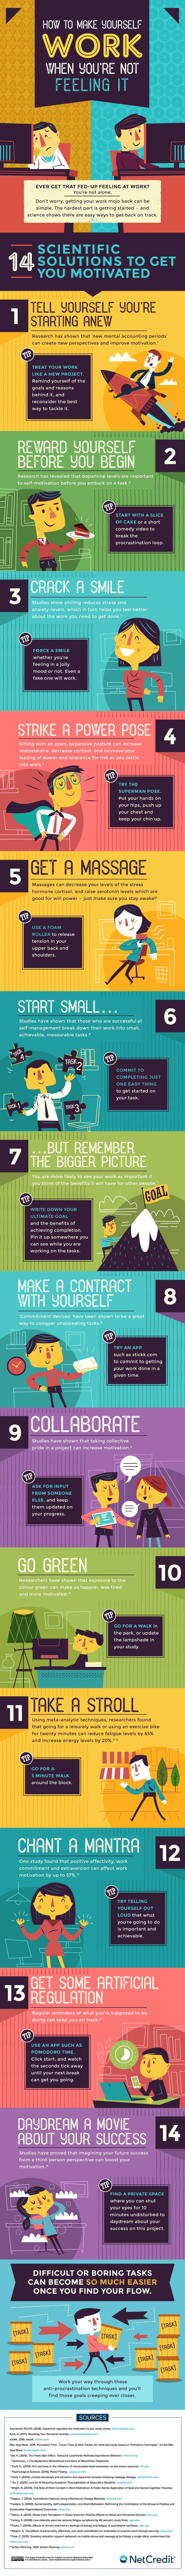 How to Make Yourself Work When You're Not Feeling It #Infographic